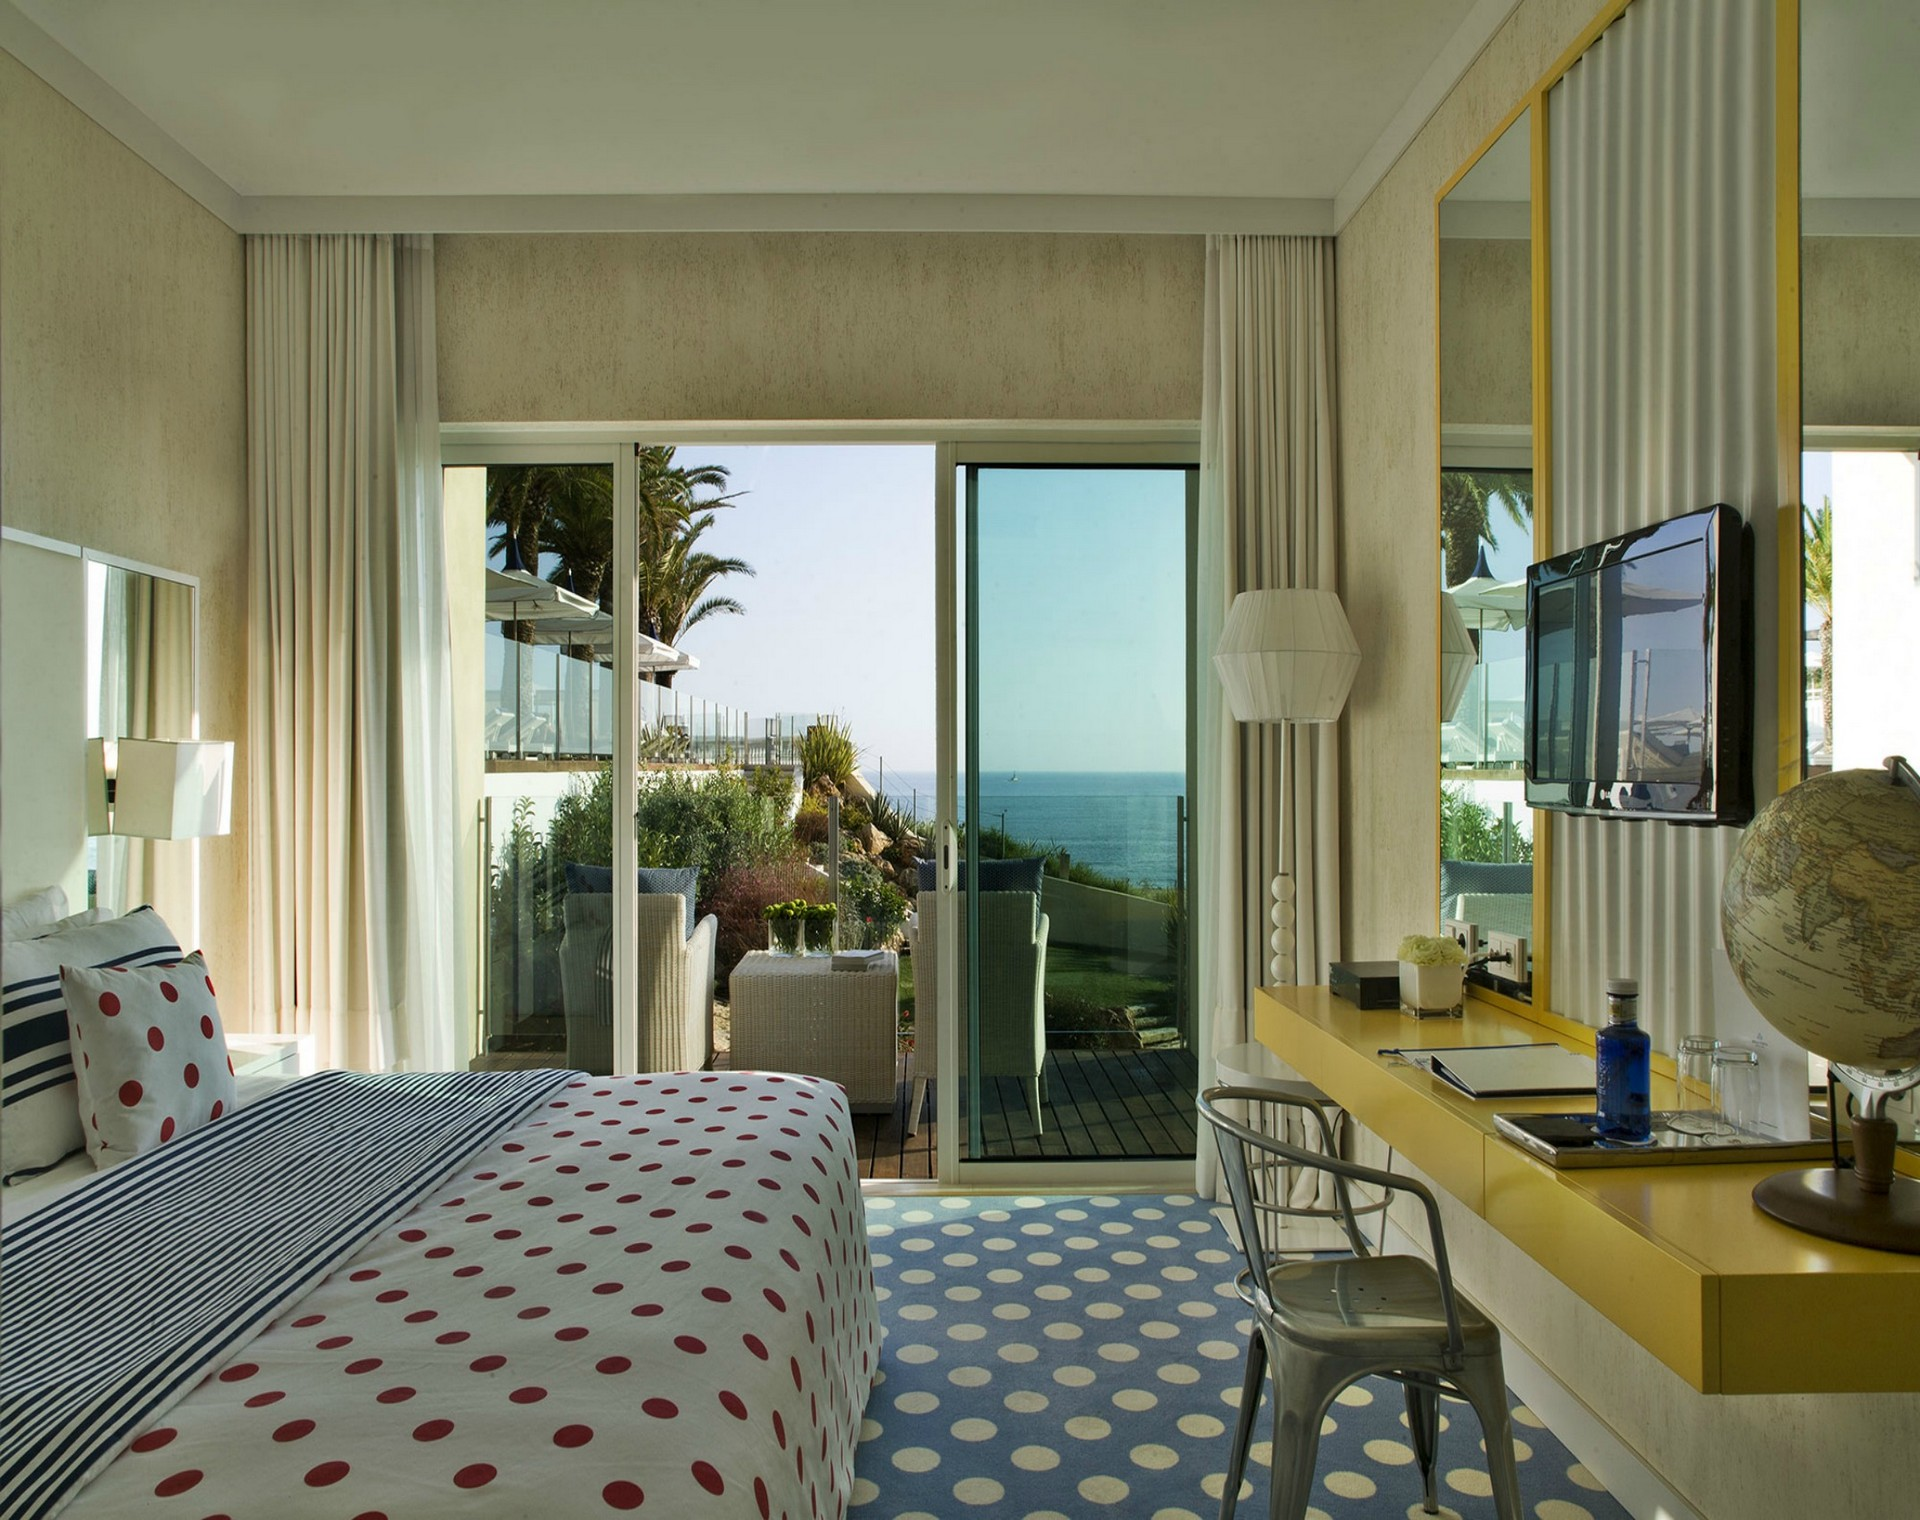 Best Design Hotels: Bela Vista Hotel what to do in lisbon What To Do In Lisbon: 48 Hours In The Capital Best Design Hotels 5